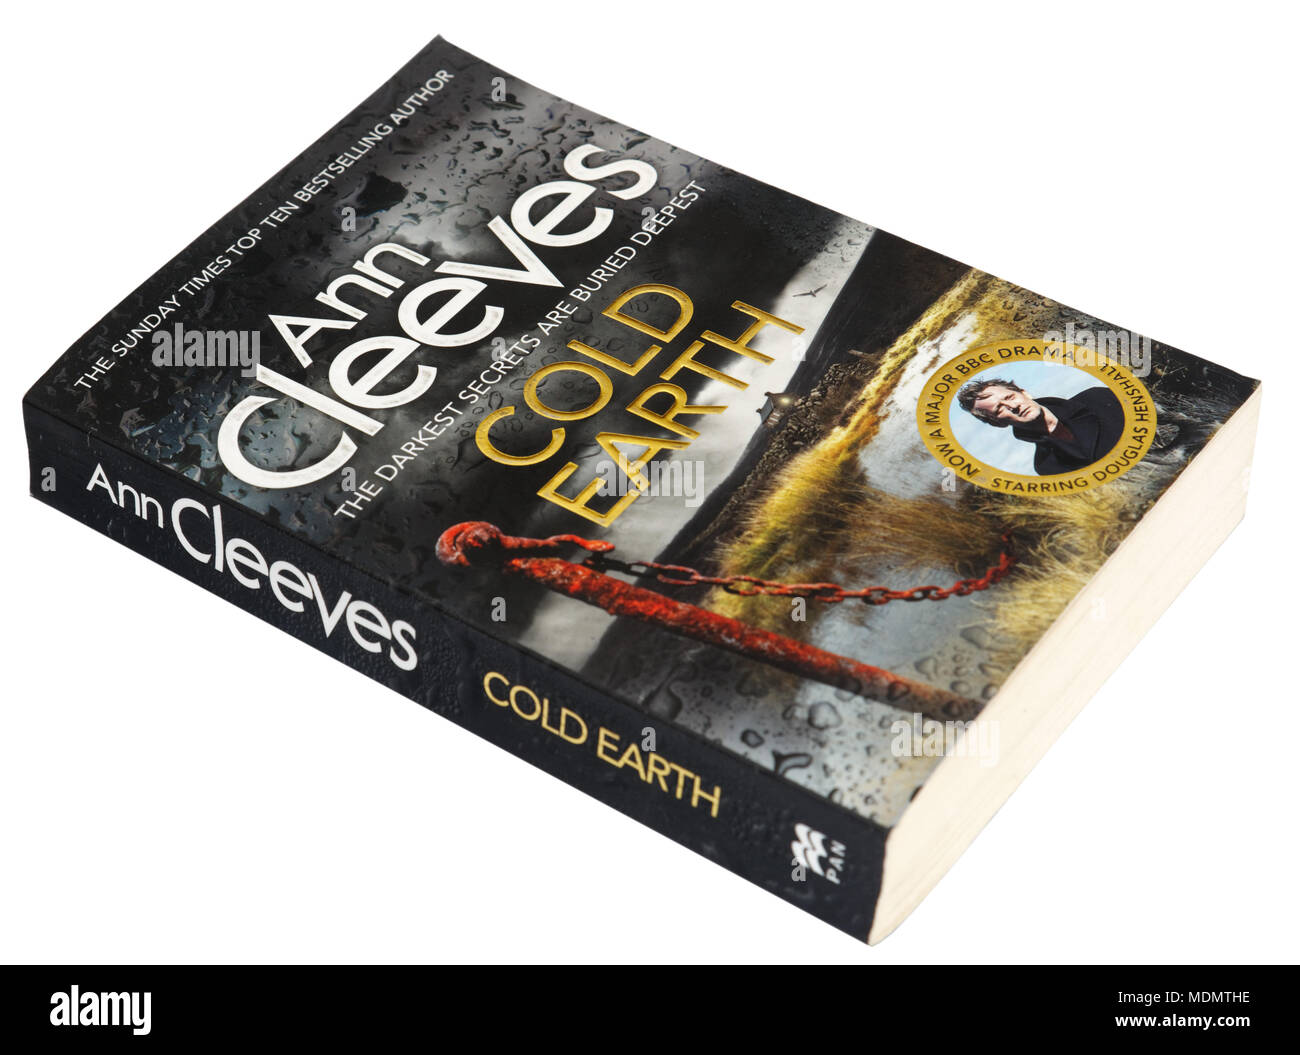 Cold Earth by Ann Cleeves - a Shetland story - Stock Image